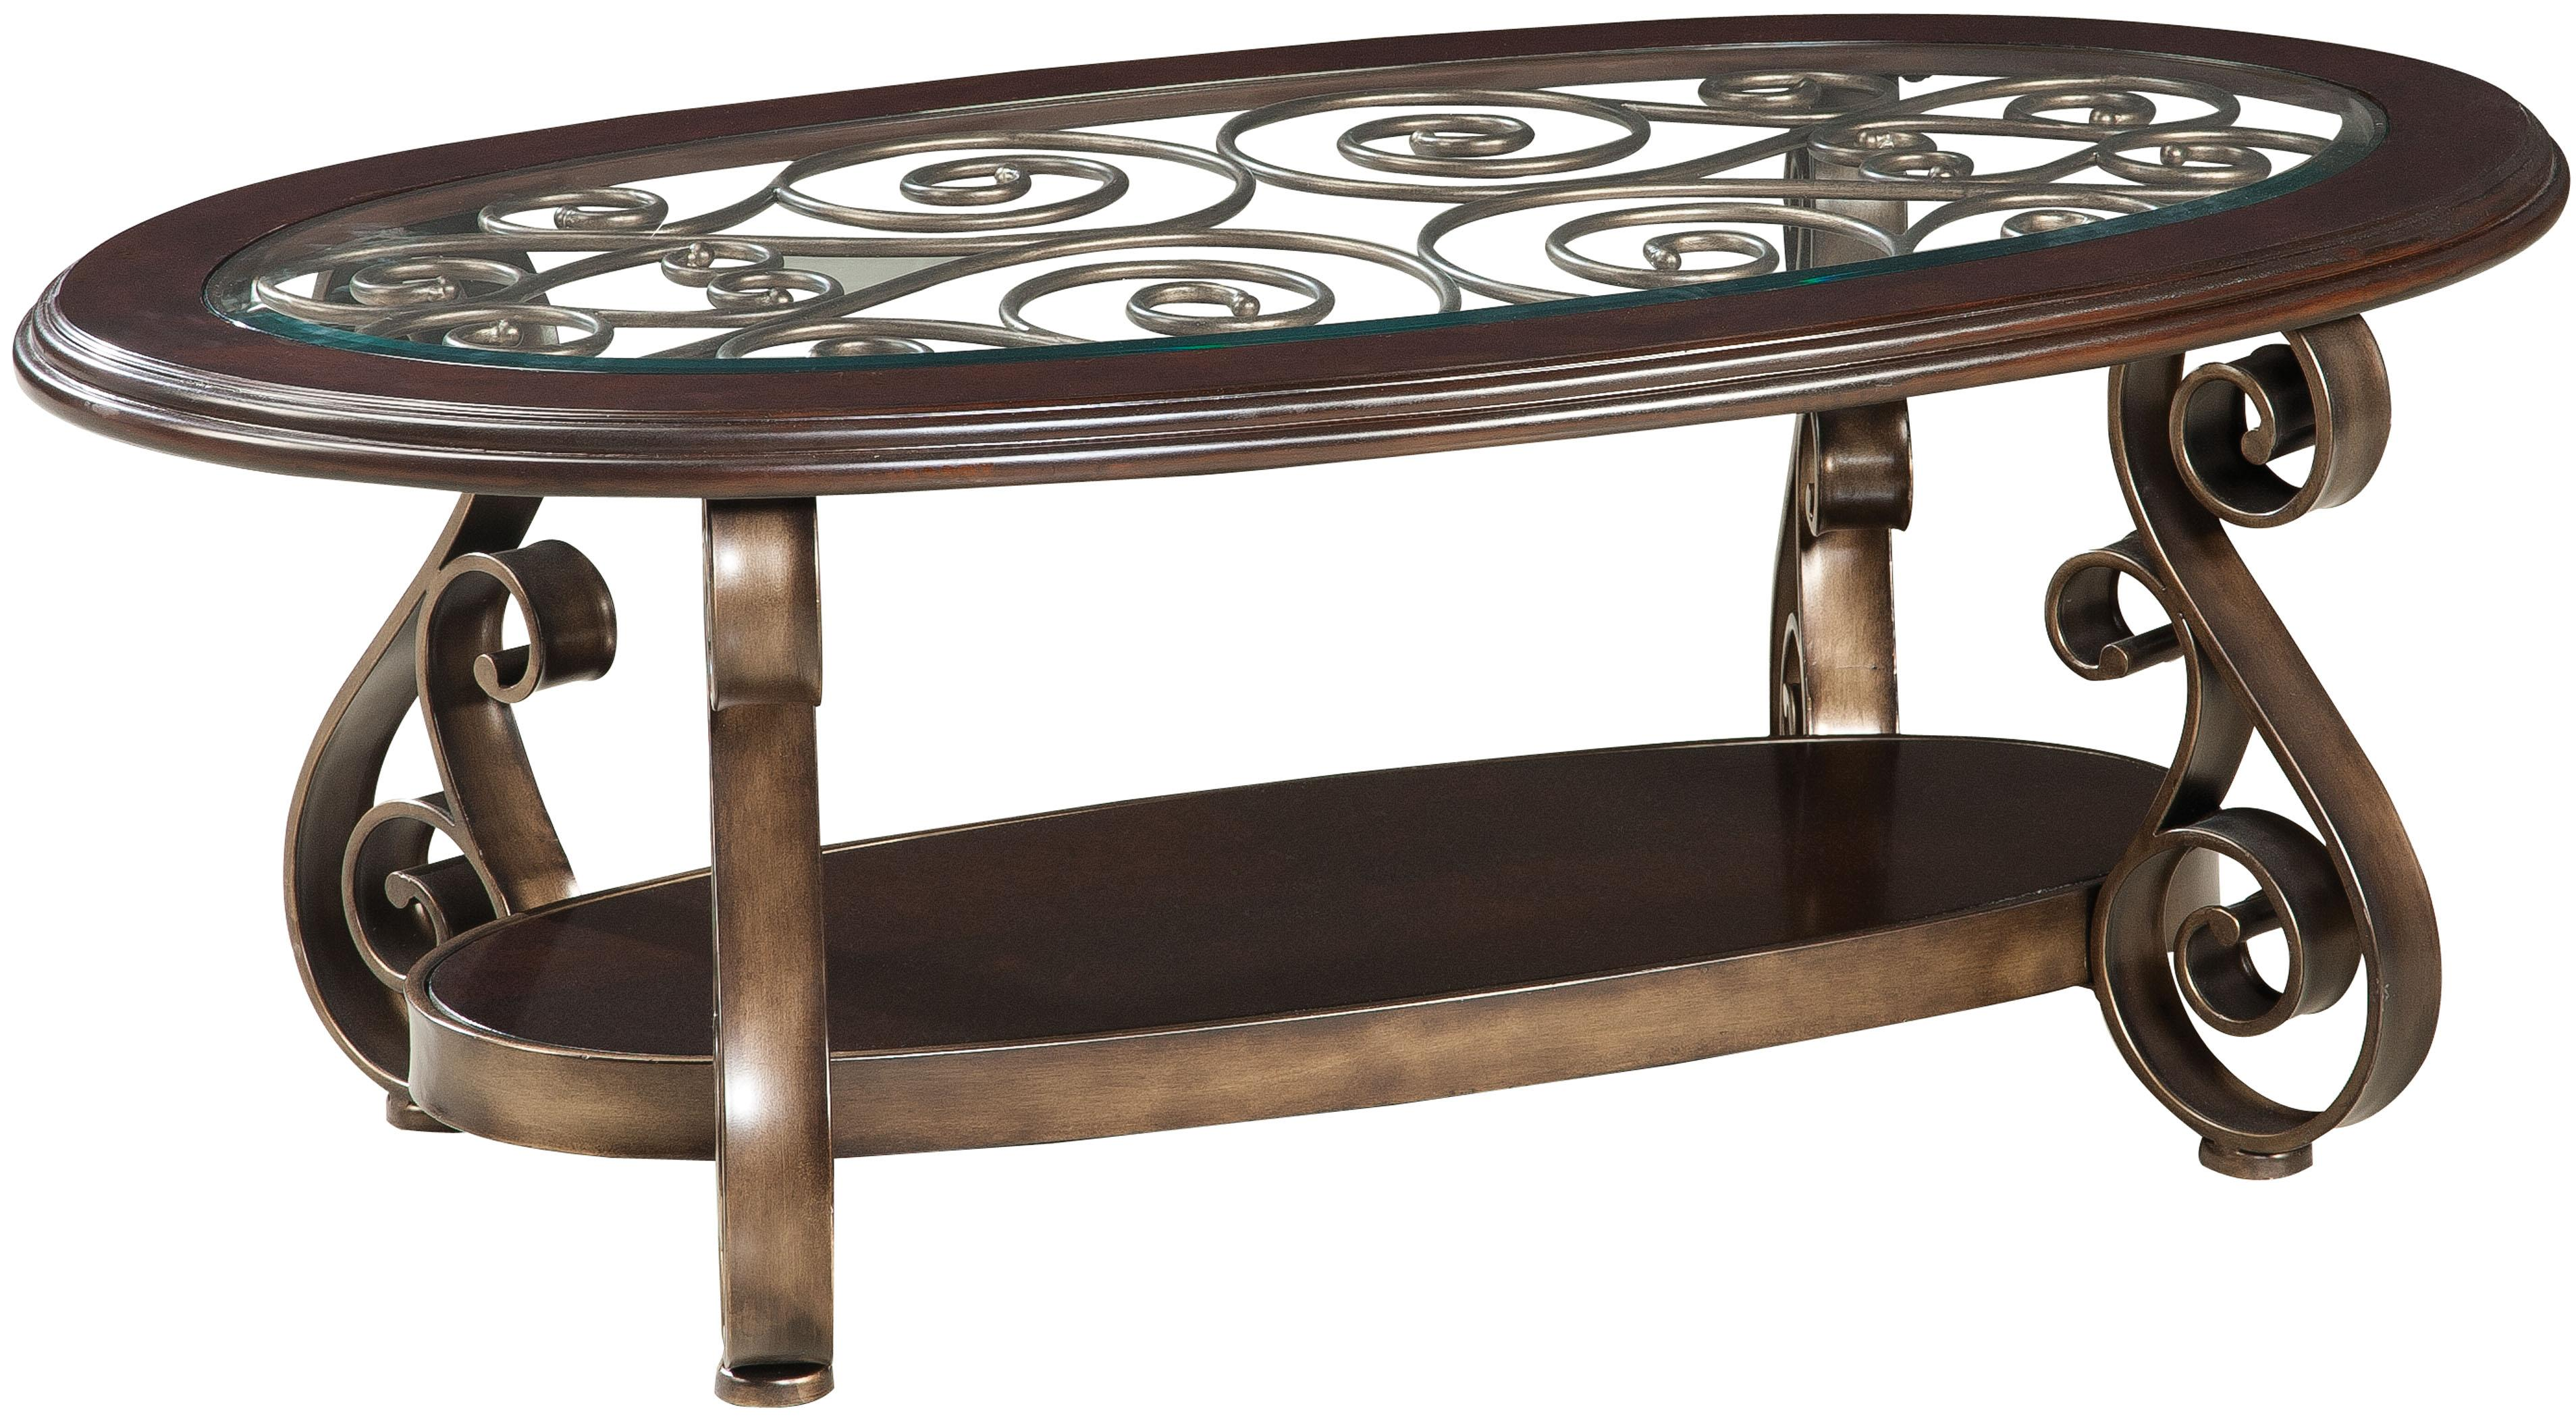 standard furniture bombay old world cocktail table with glass top products color wood end and scroll legs pub set black metal pipe riverside coventry temecula murrieta tables for